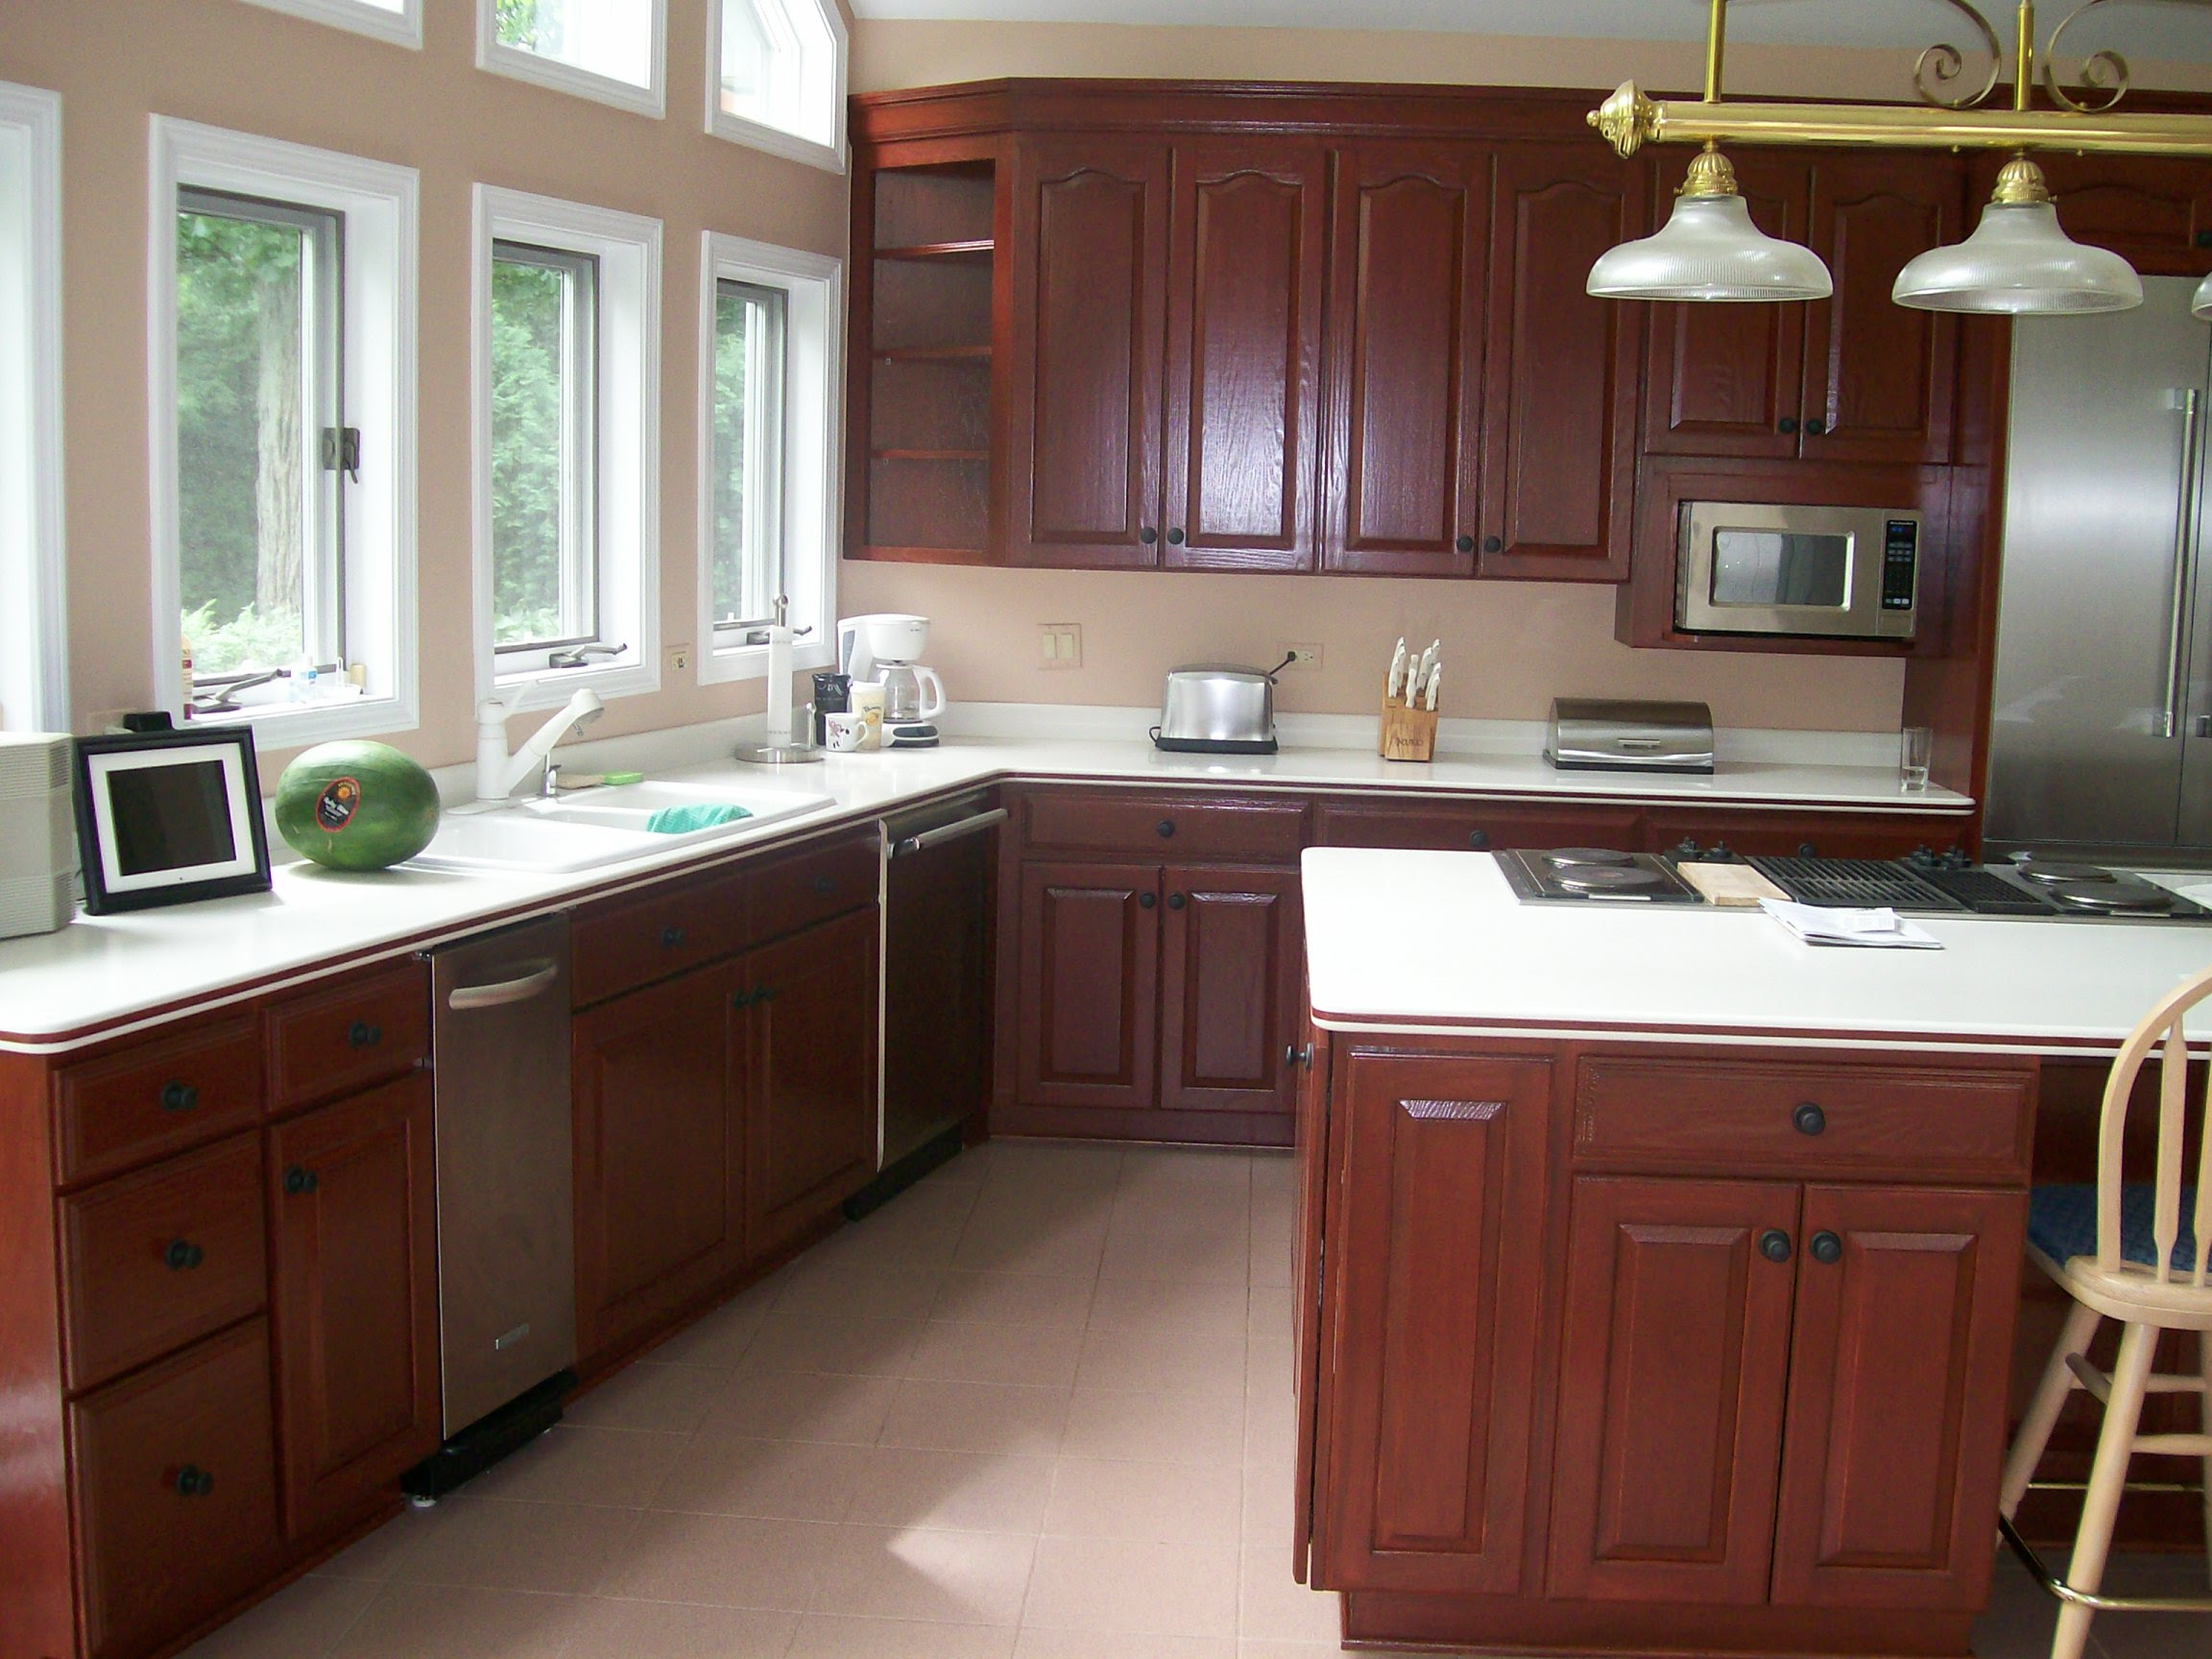 how much to refinish kitchen cabinets how much does it cost to refinish kitchen cabinets 16748